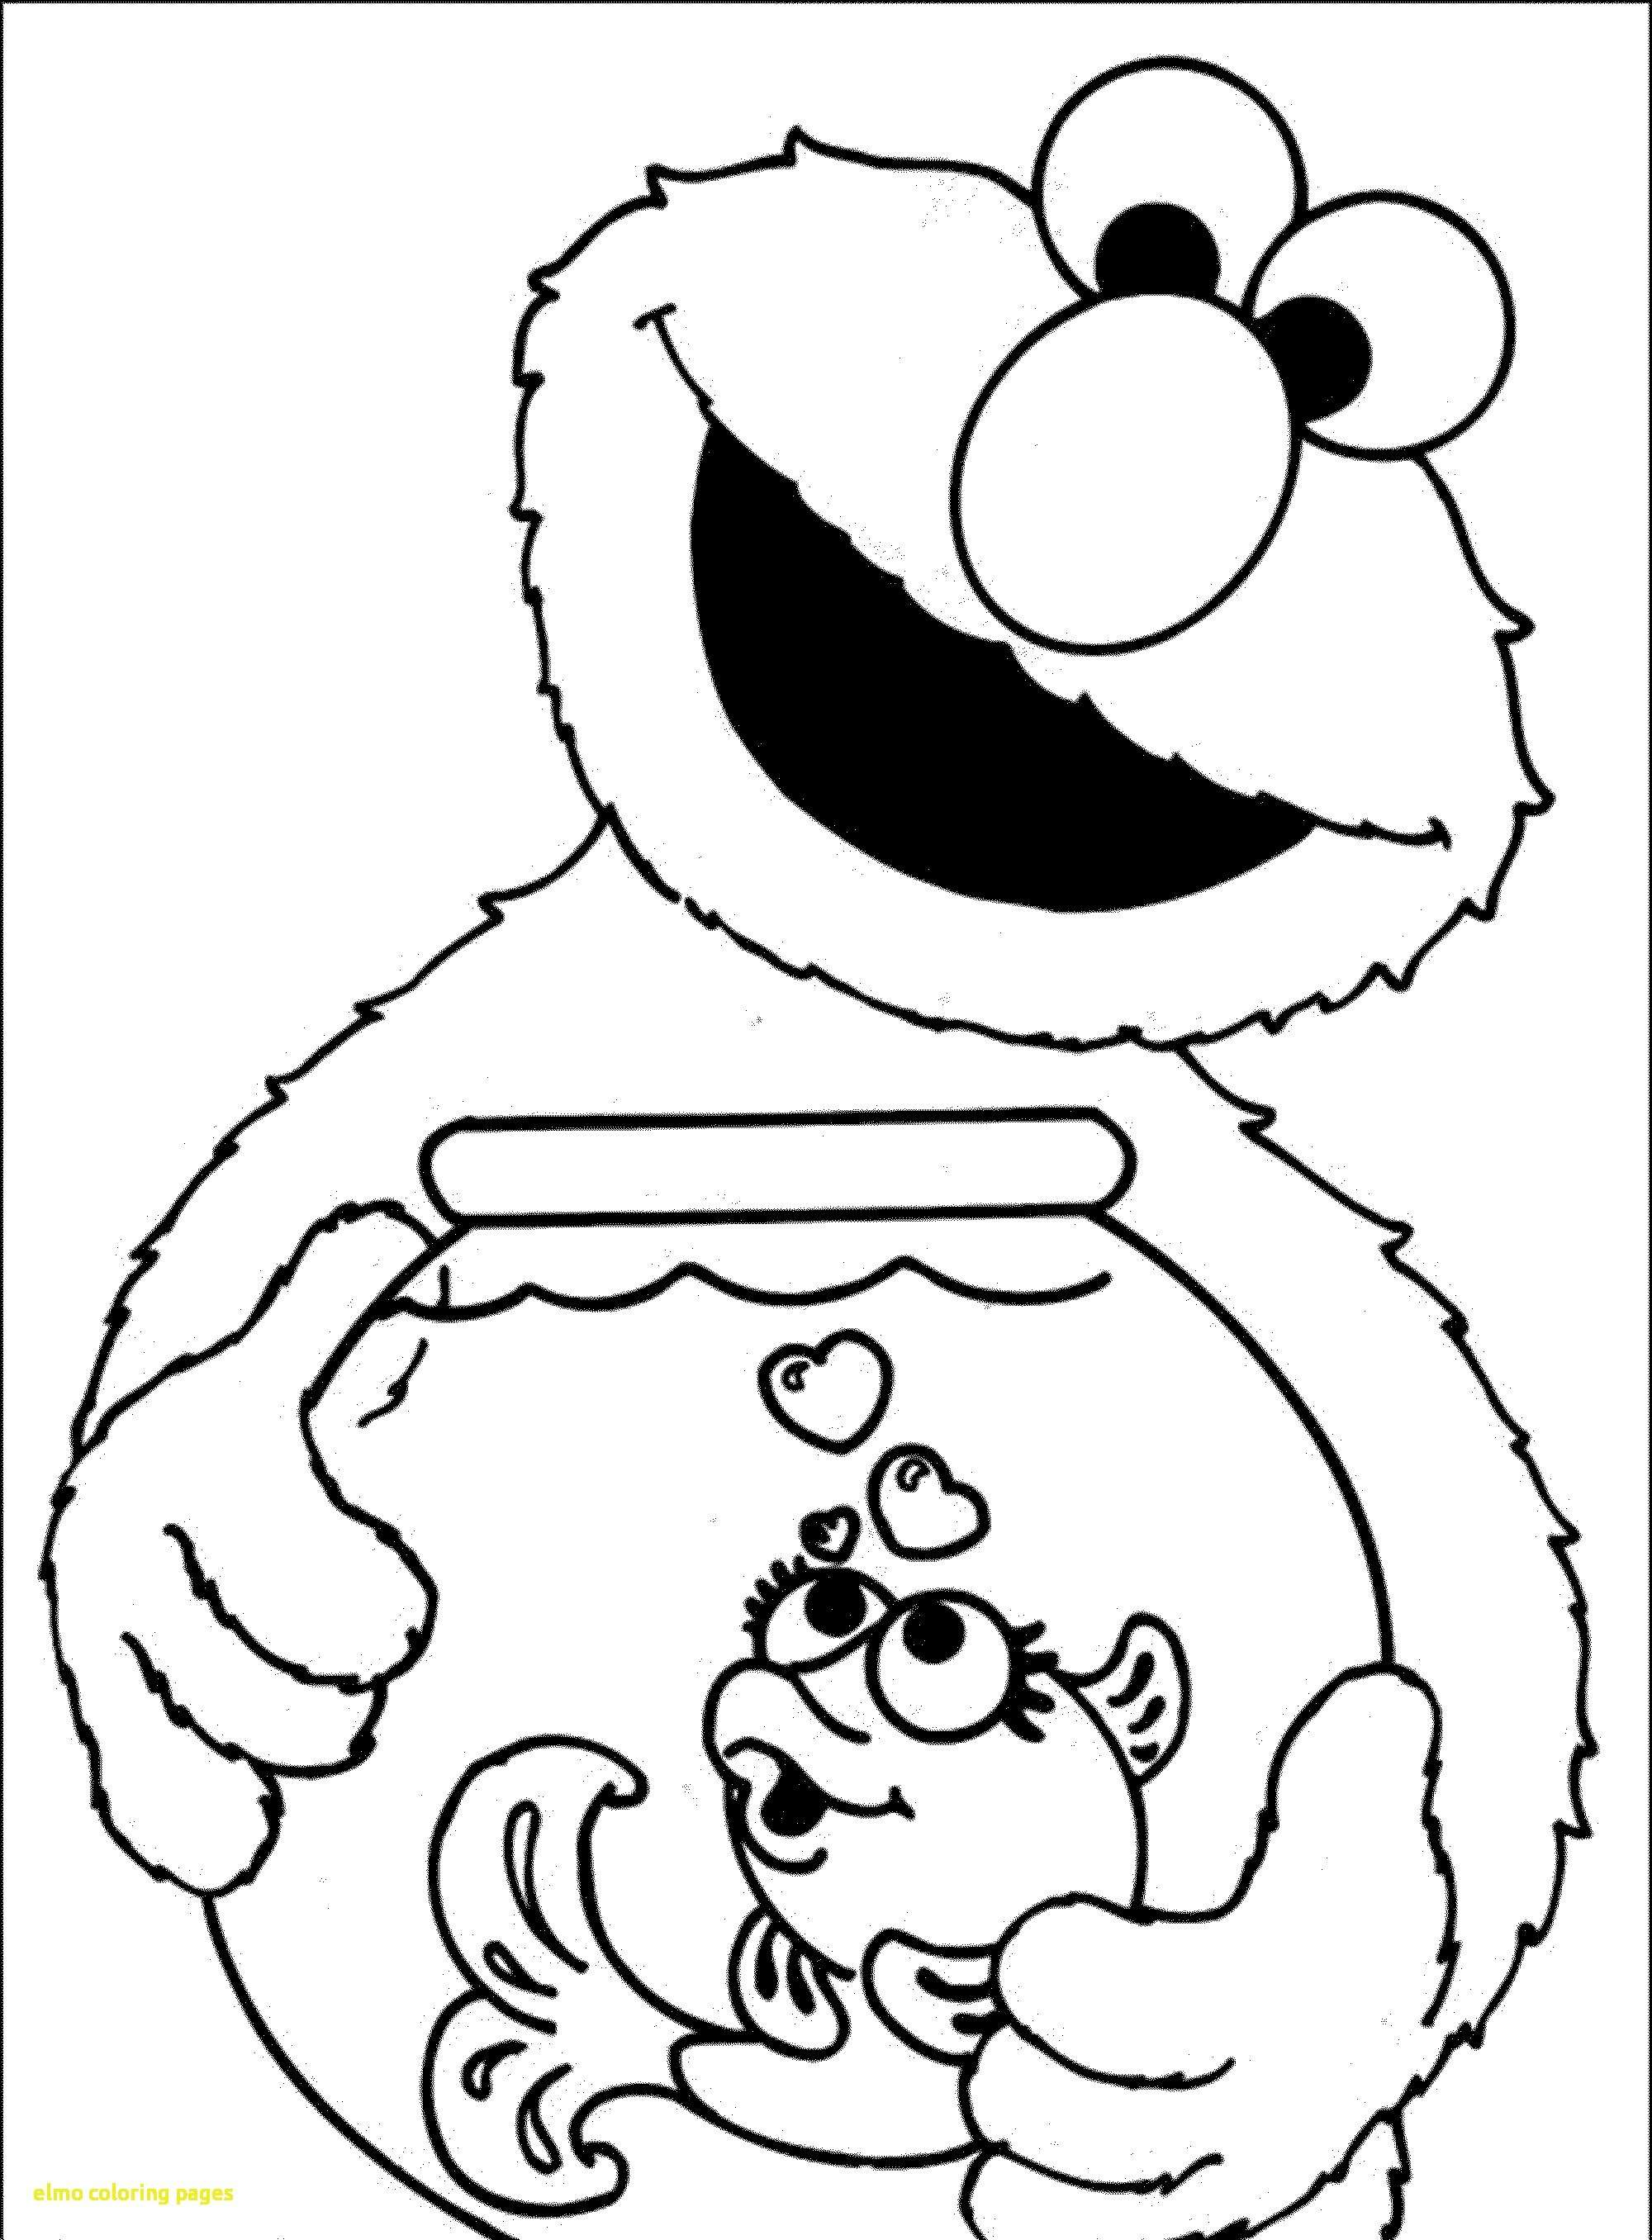 Elmo Christmas Coloring Pages Printable With And Cookie Monster To Print